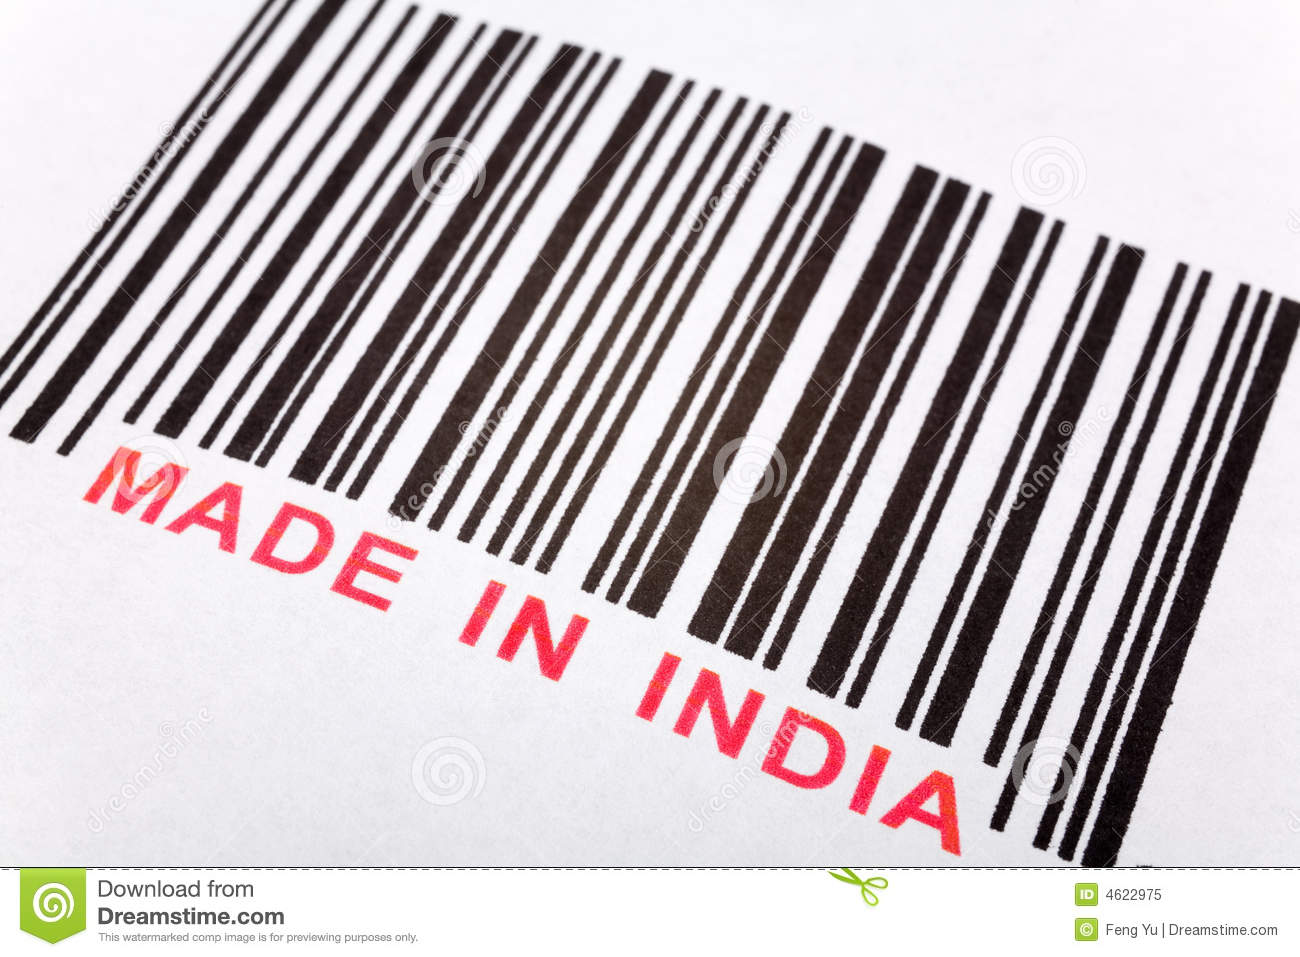 made in india royalty free stock photo image 4622975 barcode clip art with name aaron barcode clipart free